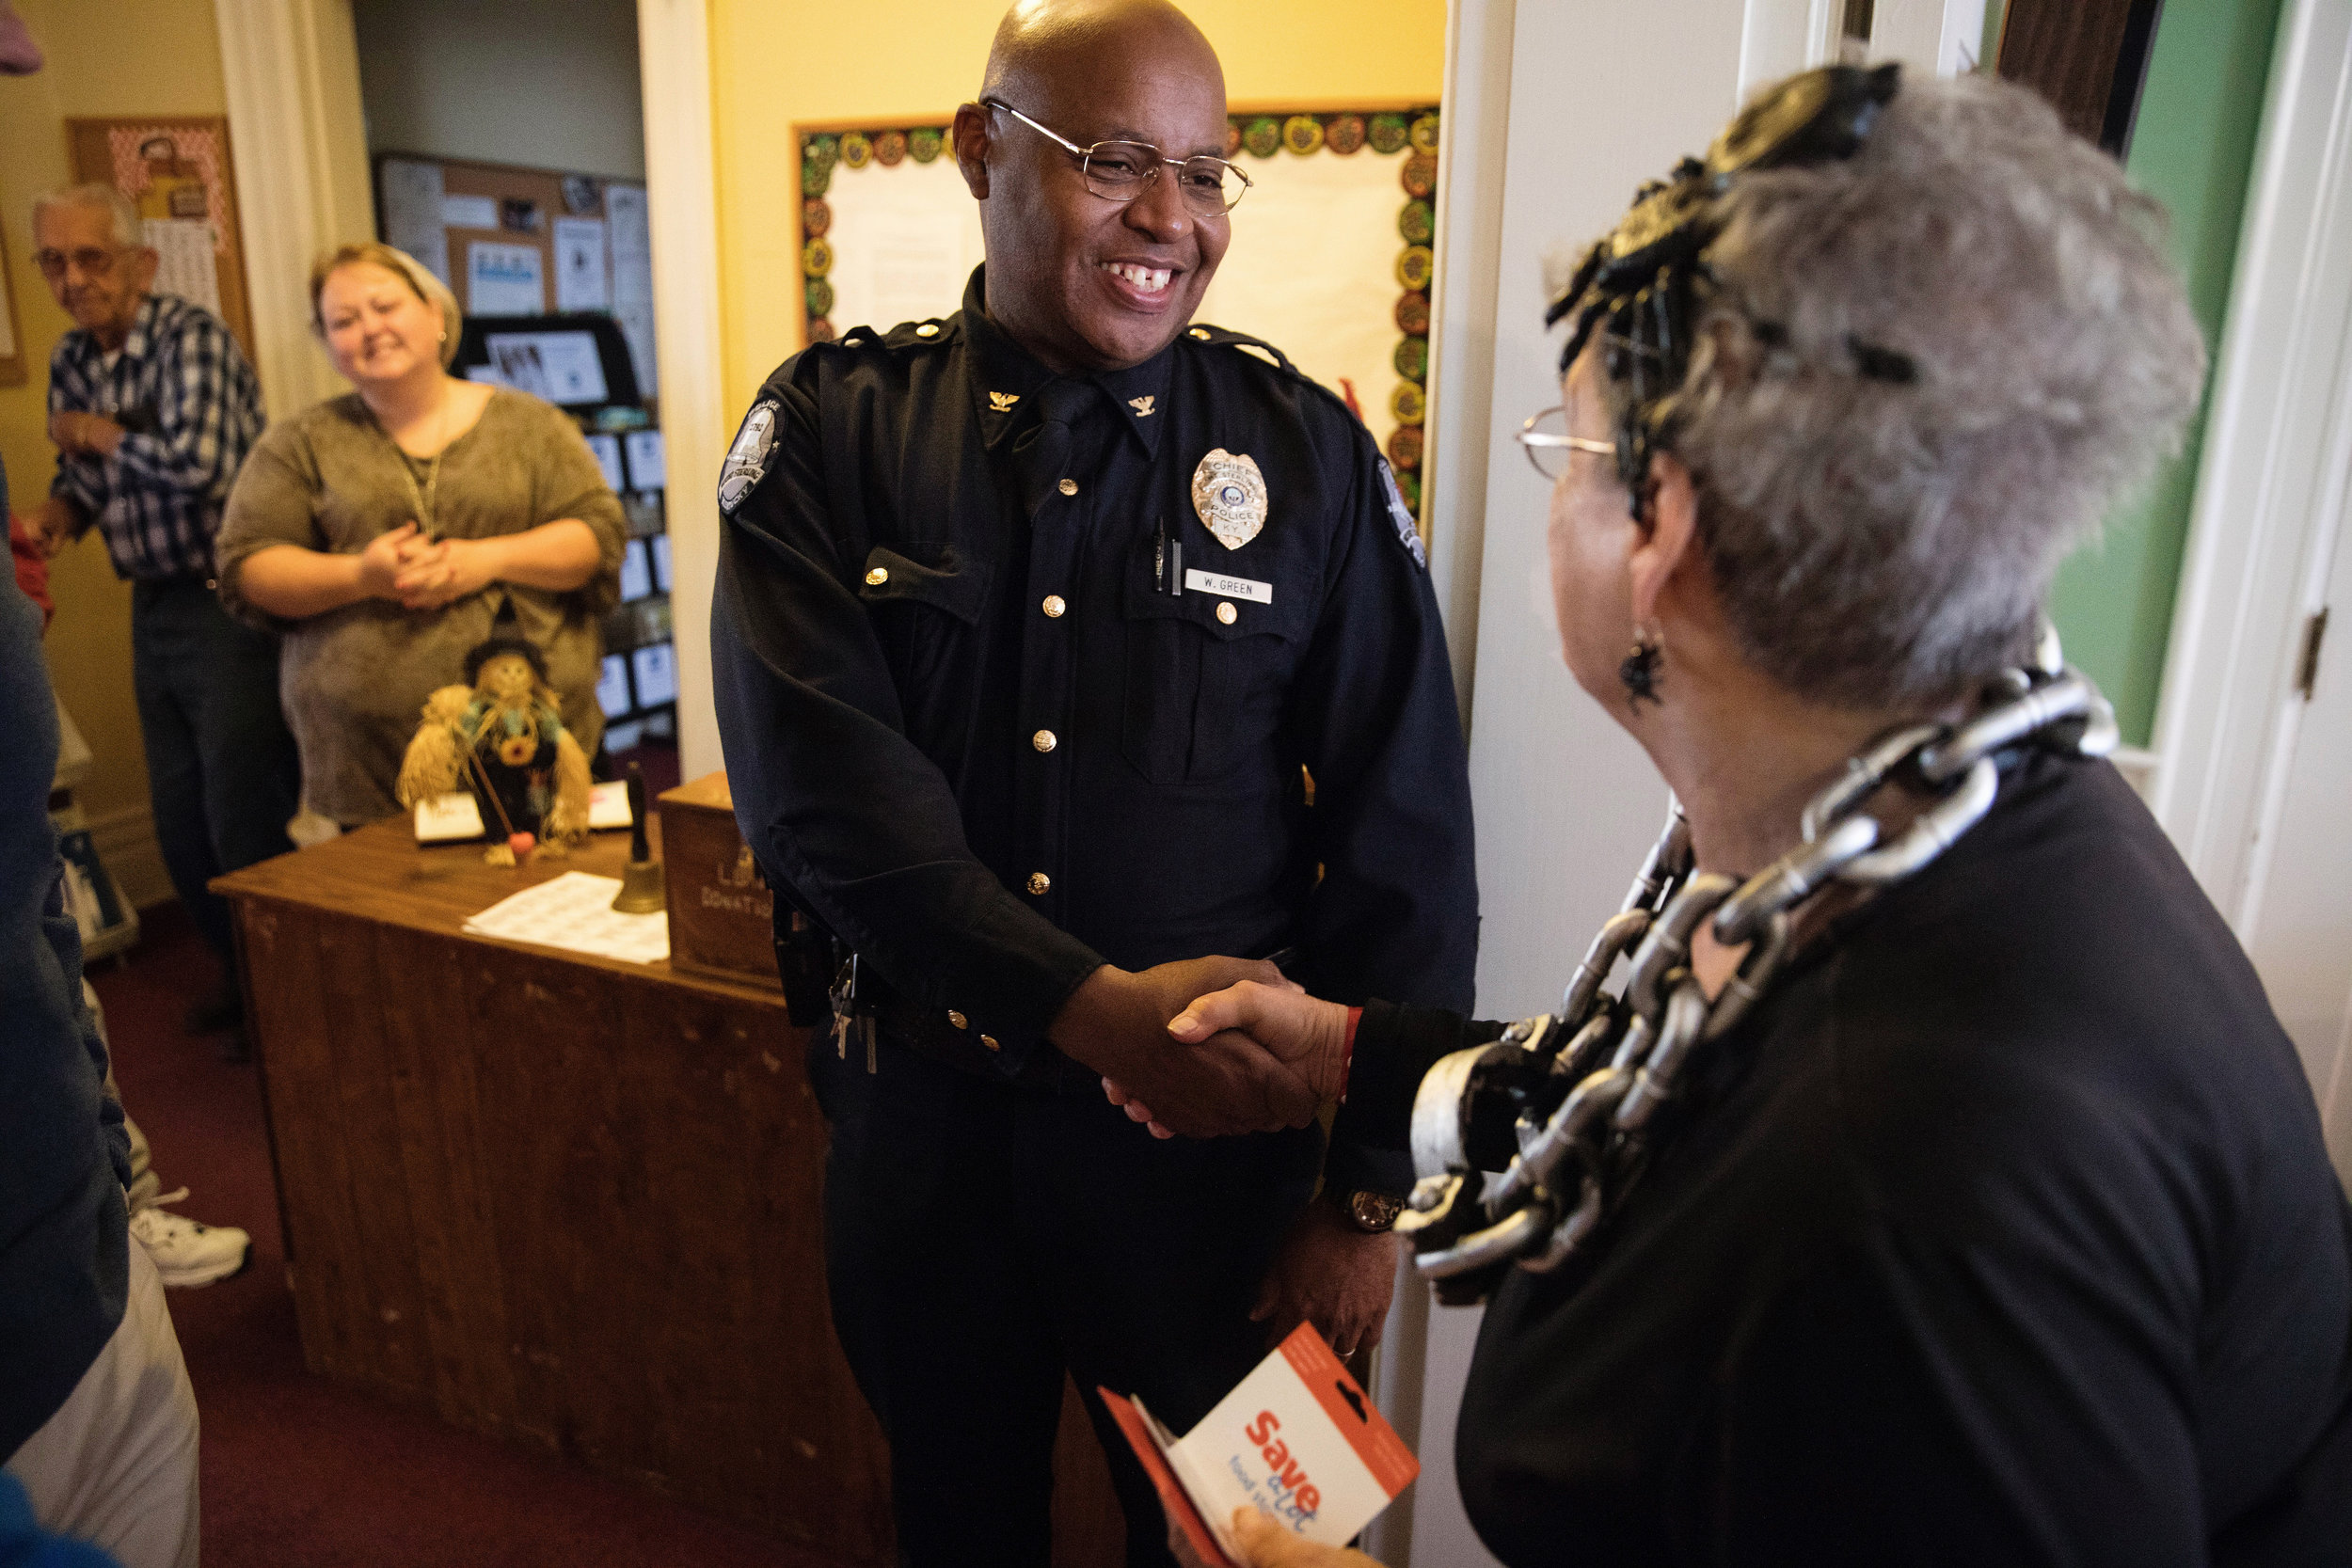 Wayne congratulates Ann Dragoo, the winner of the chili cook-off. As chief, Wayne takes pleasure in being present for community events like this where he can represent and be a face for the police department.